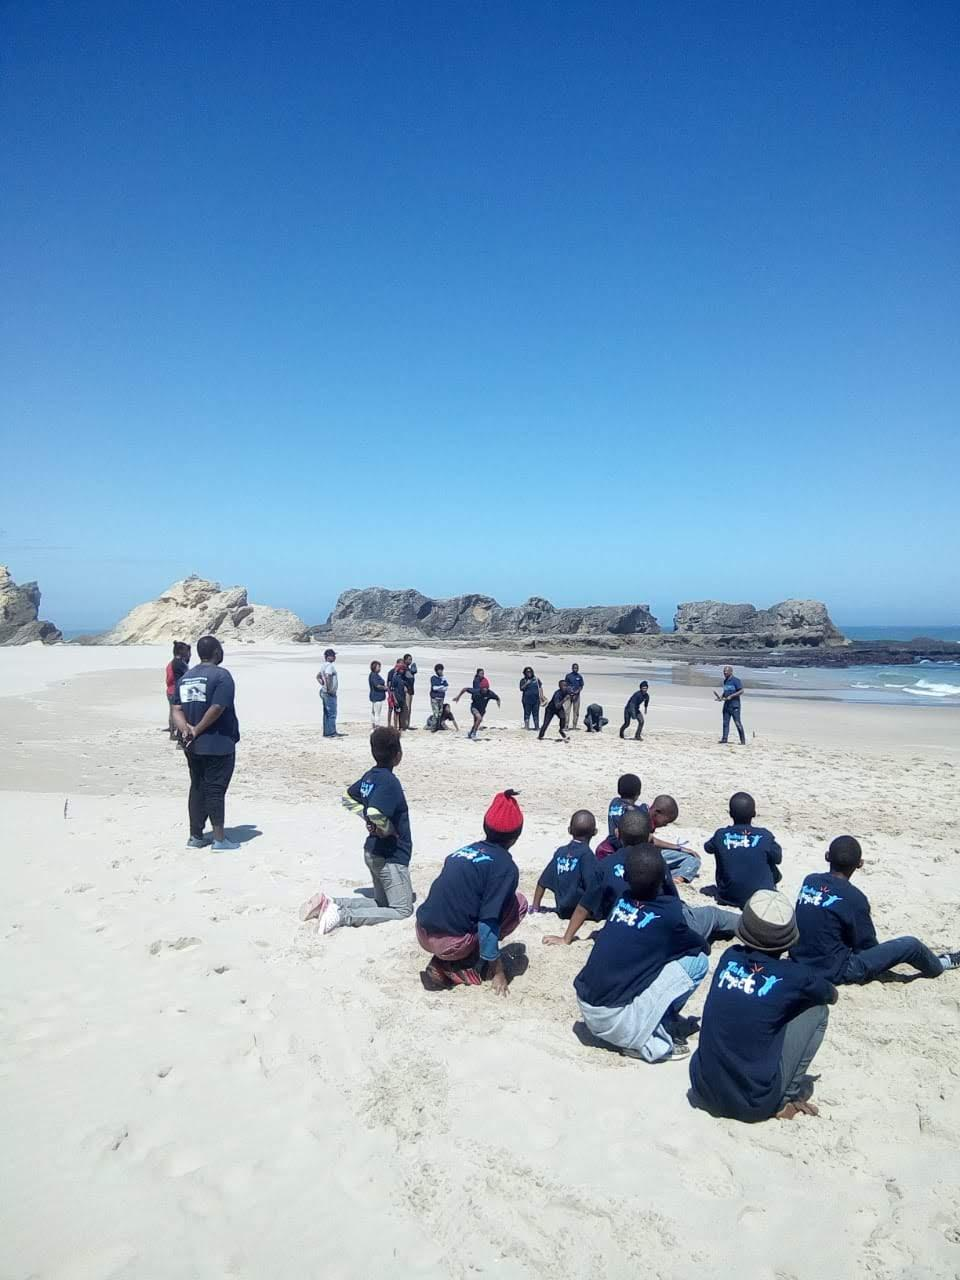 Kids Chilling On The Beach At Eersterivier